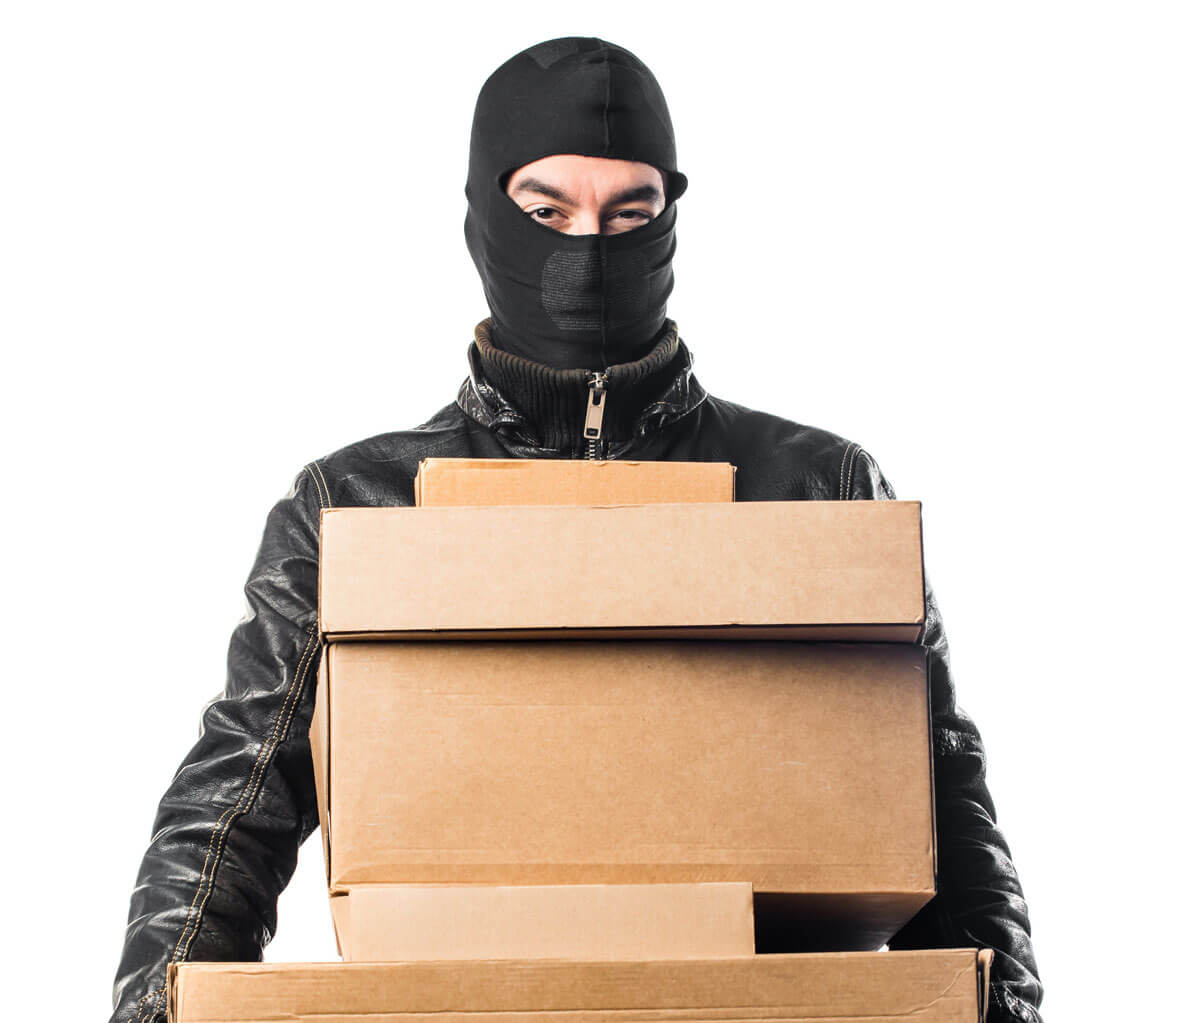 Keep your cargo safe form theft